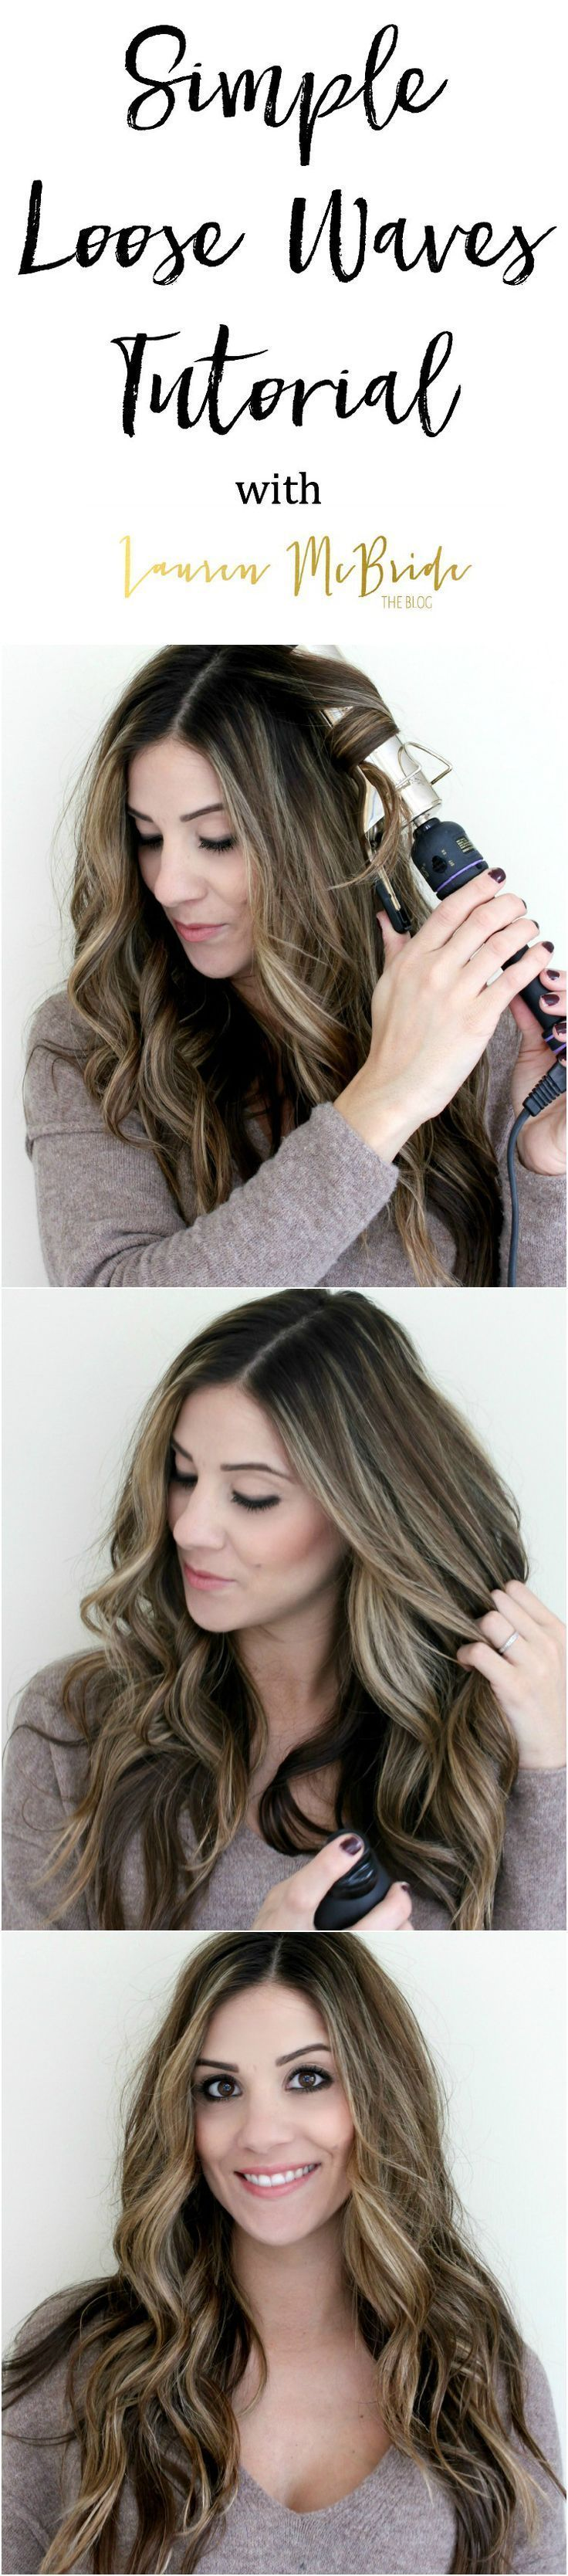 Simple Loose Waves Tutorial | DIY Hair Tutorial | Hair Tutorial Tips | Hair Tutorial | DIY Hair Styles | How to Curl Hair | Hair Curling Tutorial || Lauren McBride